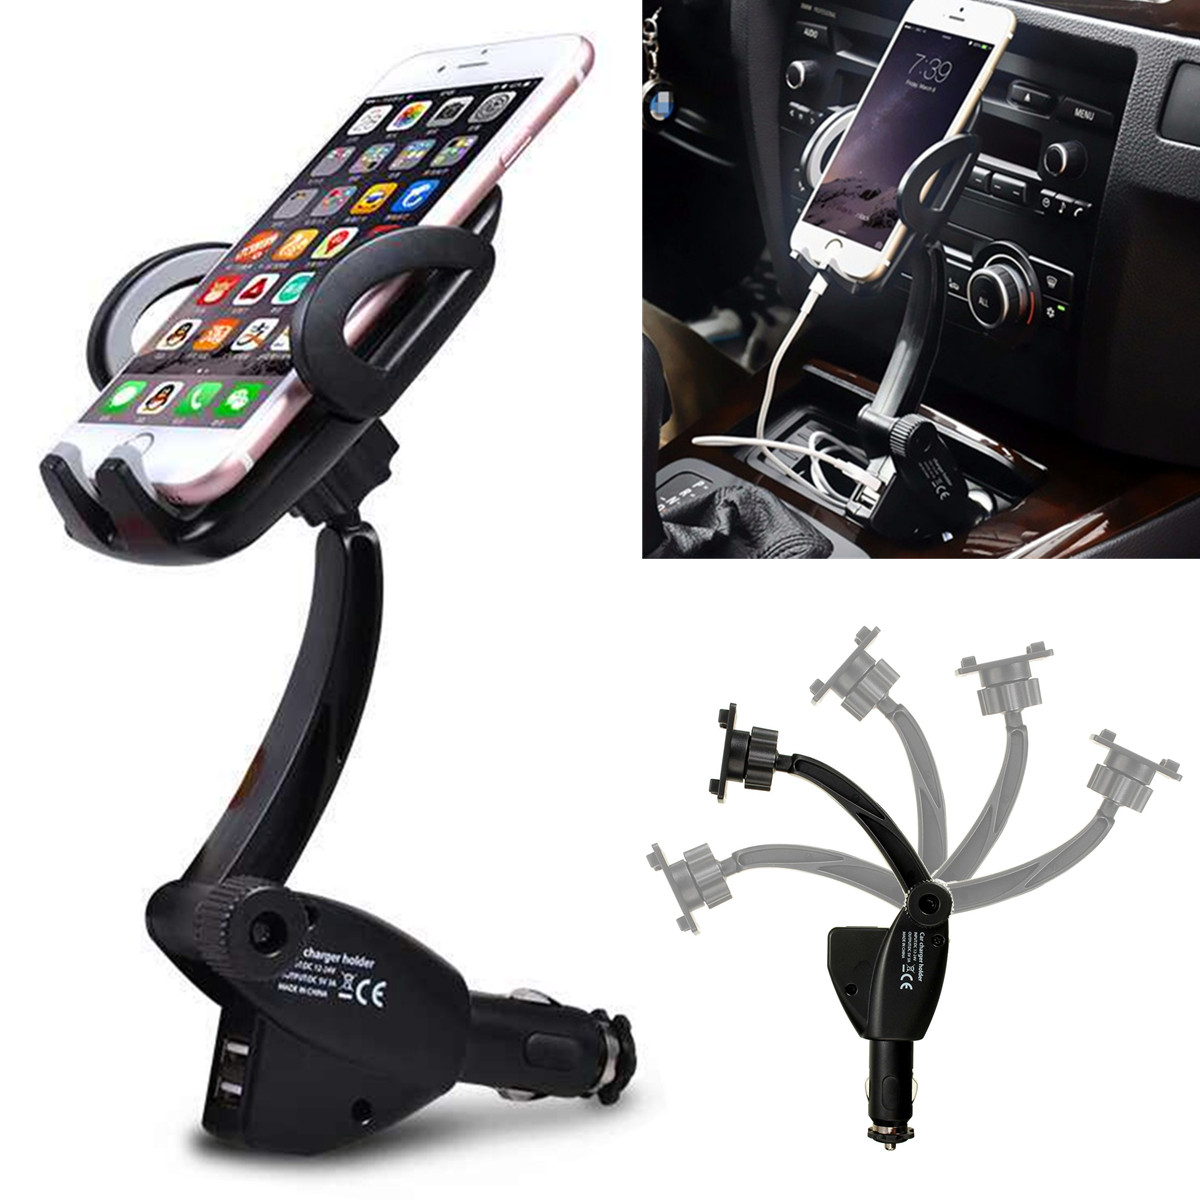 Universal Car Cigarette Phone Holder Mount Stand ABS Dual USB Charger Cigarette Lighter Mount Cell Phone GPS MP4 Holder Cradle